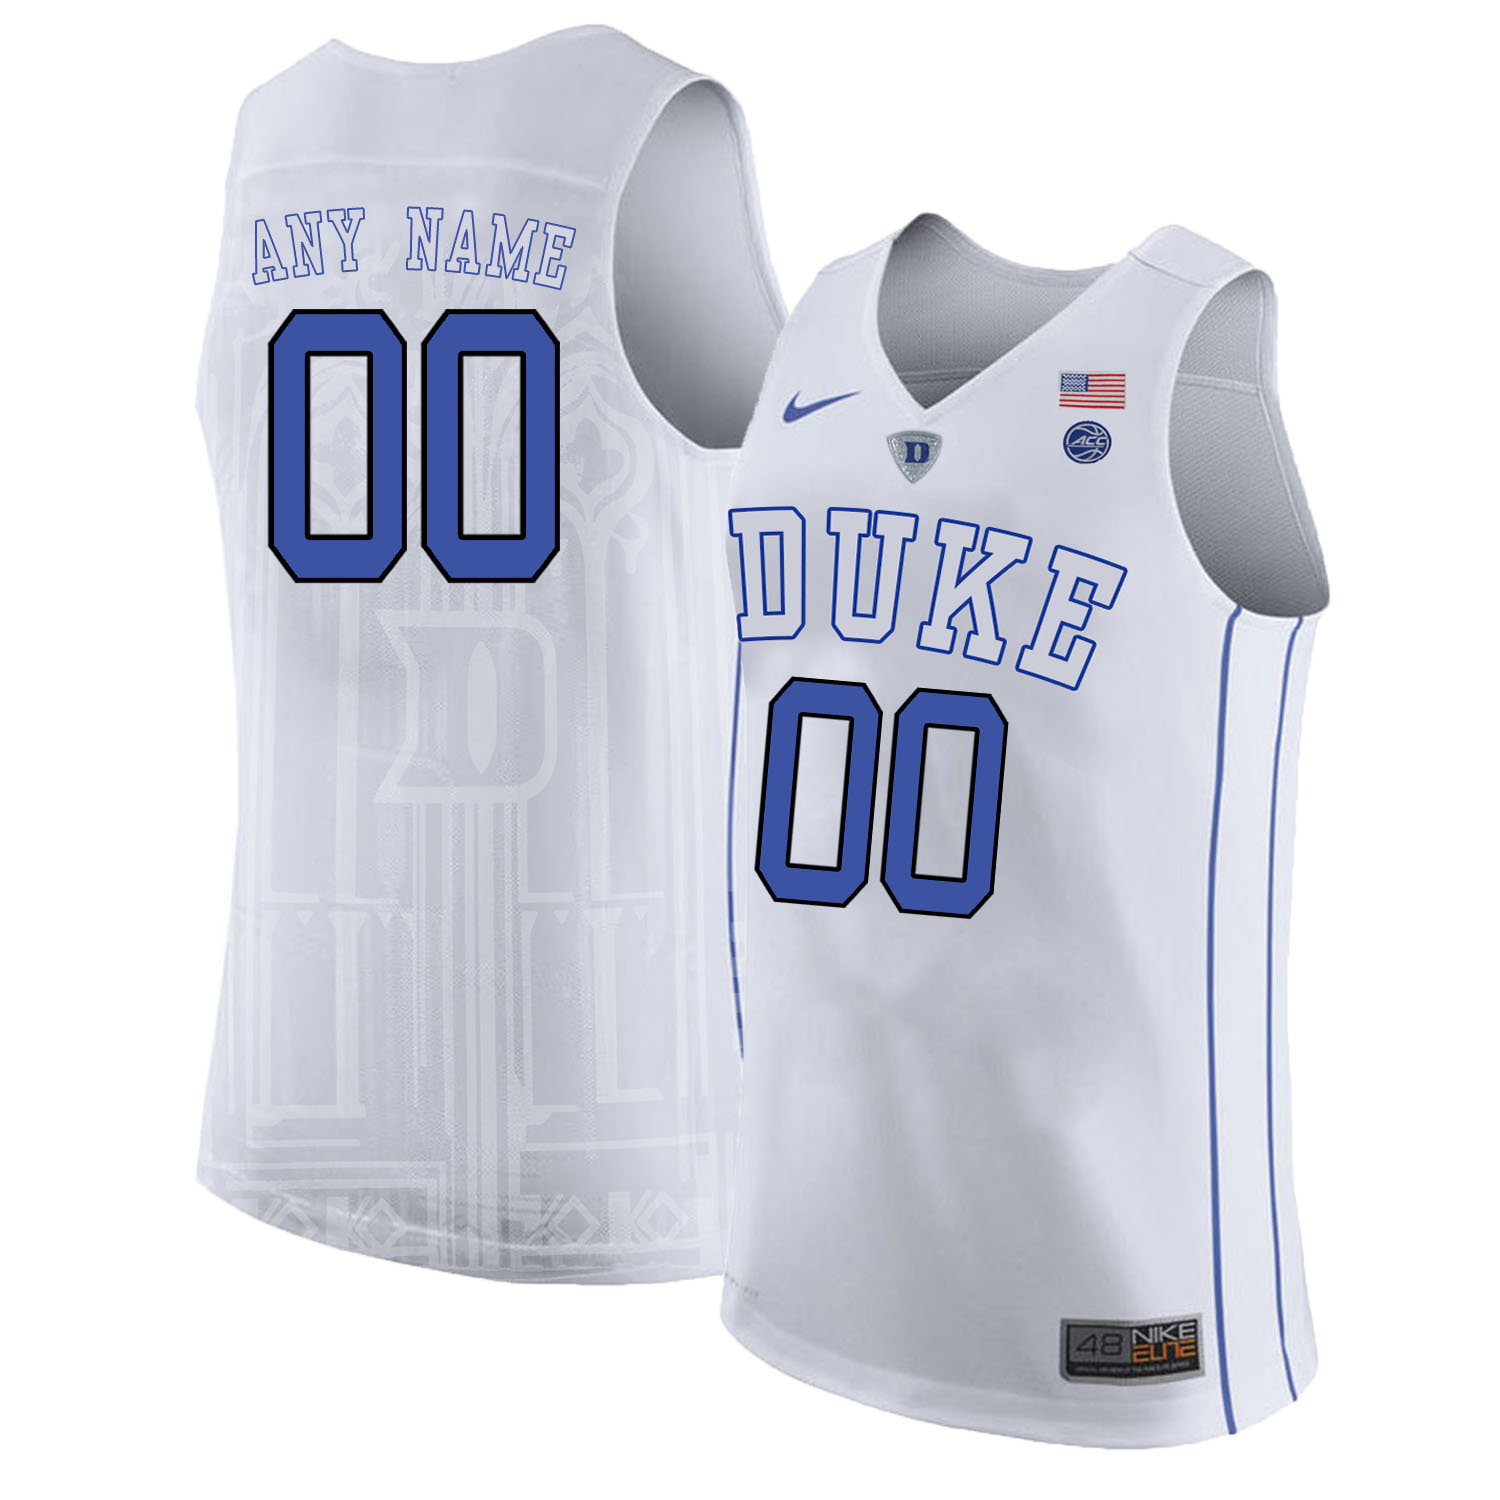 Duke Blue Devils Men's Customized White Nike College Basketball Jersey